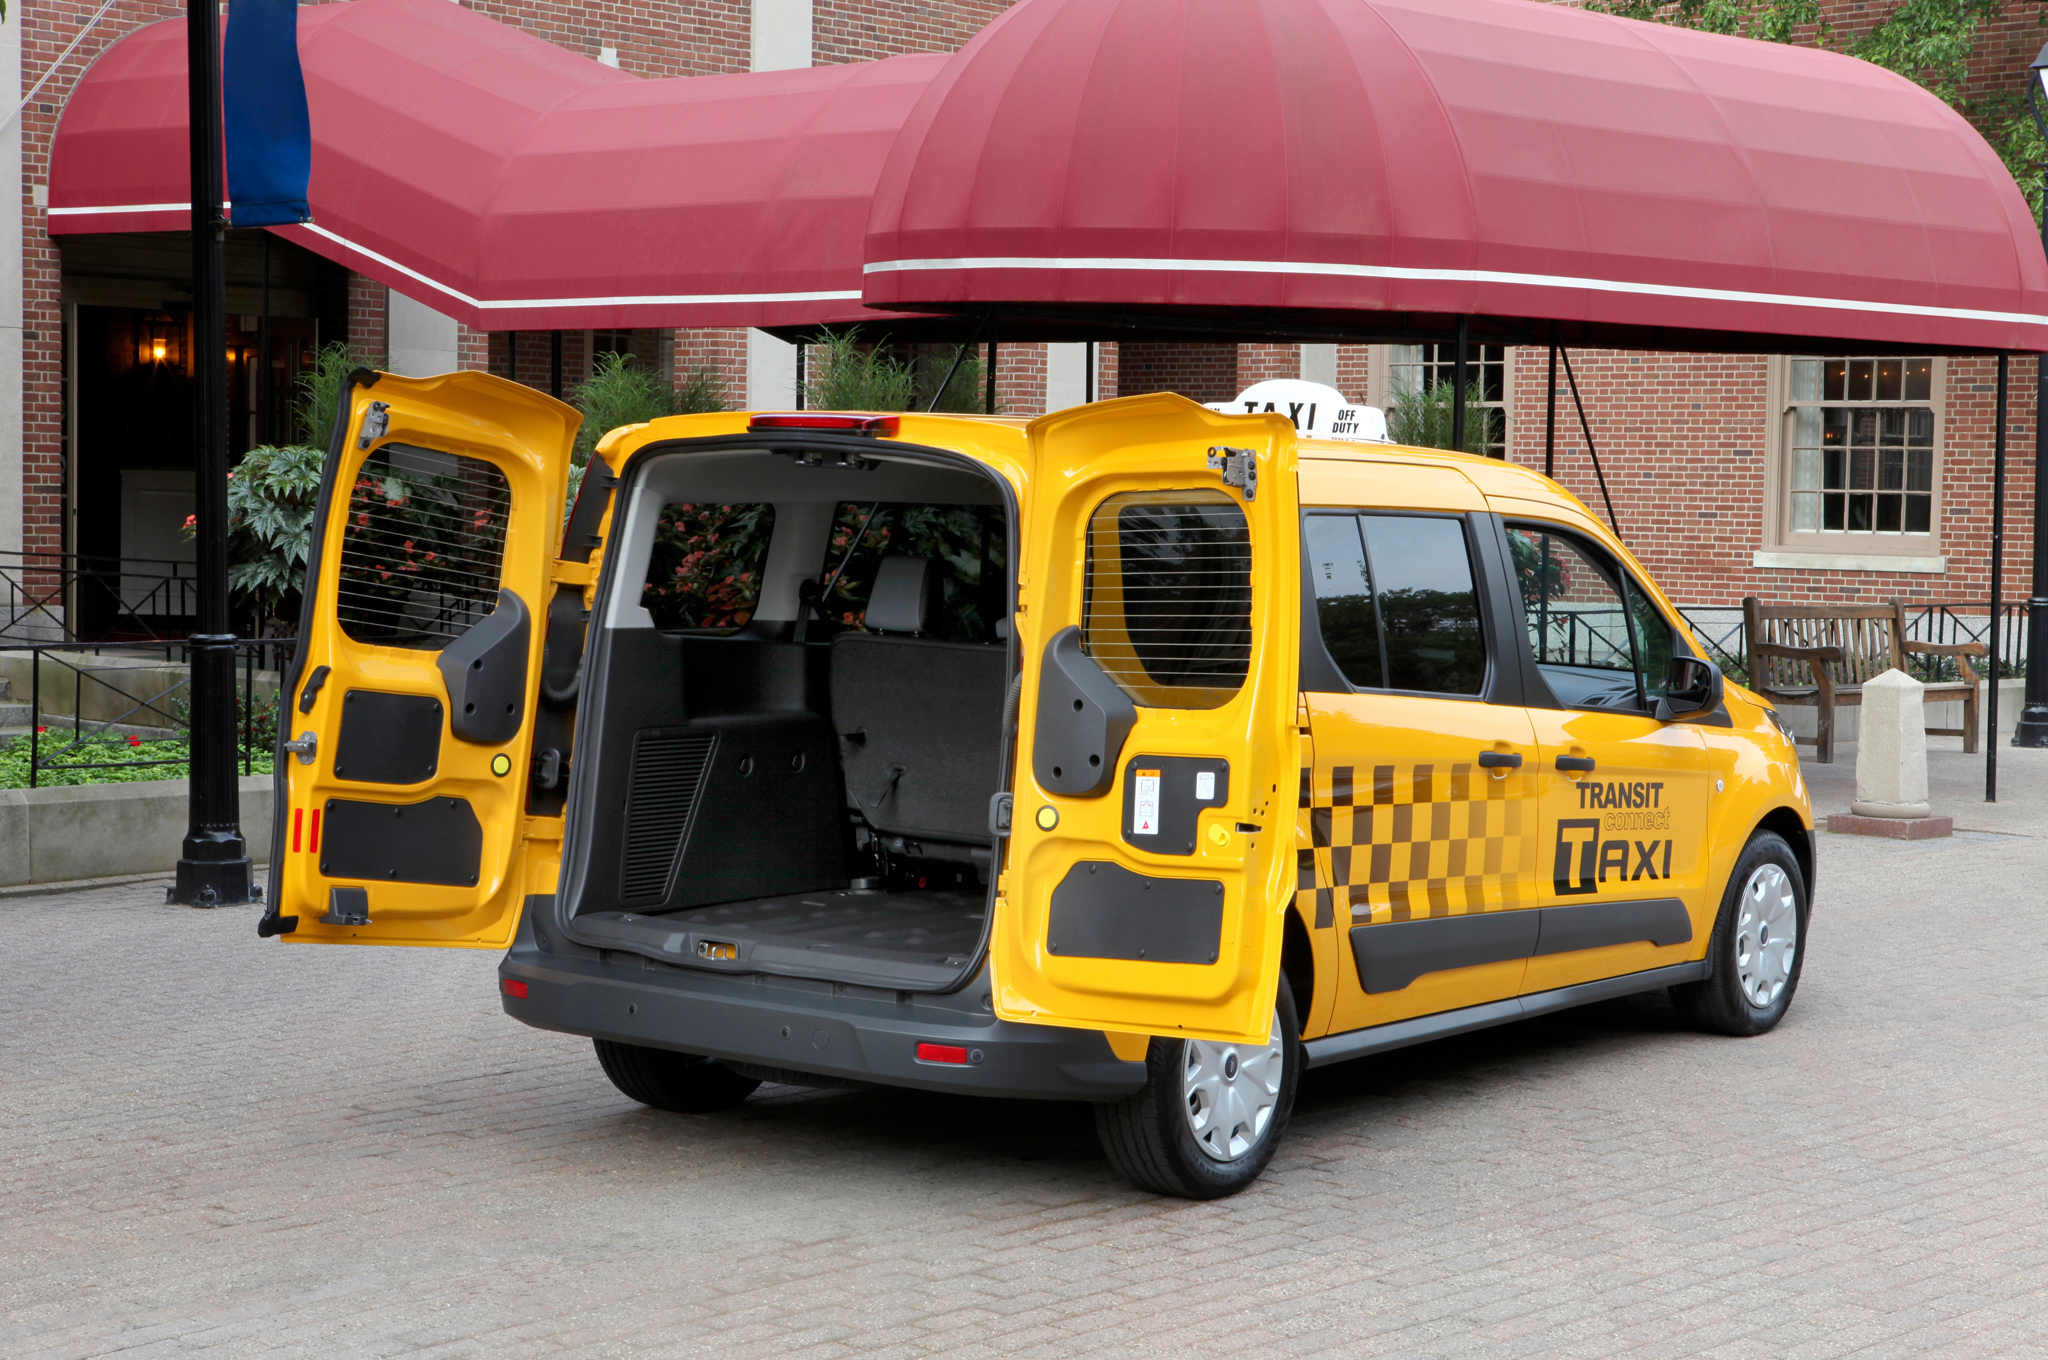 2019 Ford Transit Connect Taxi photo - 4